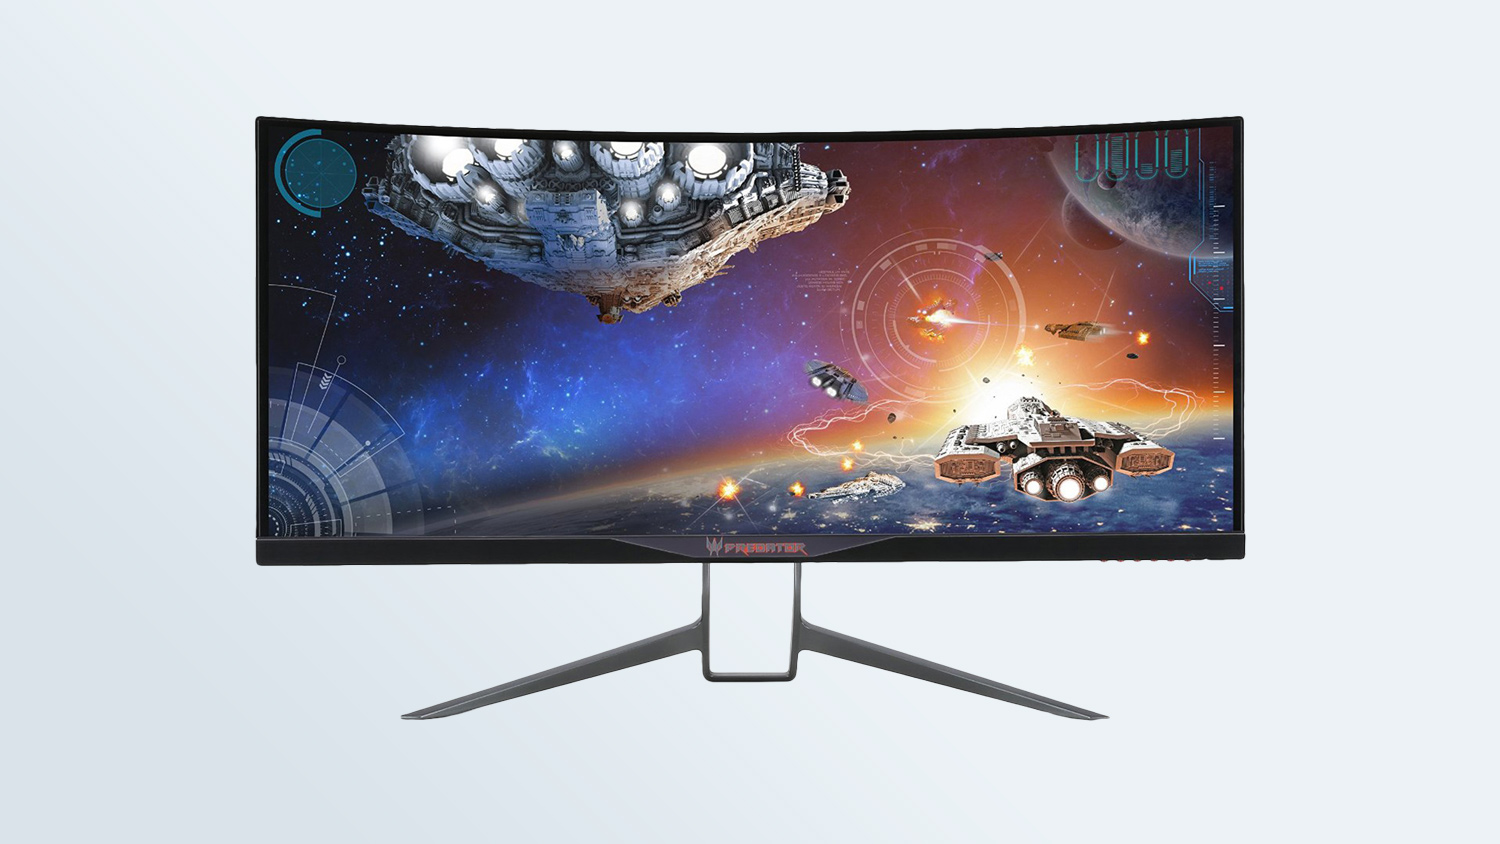 Best gaming monitors: Acer Predator X34